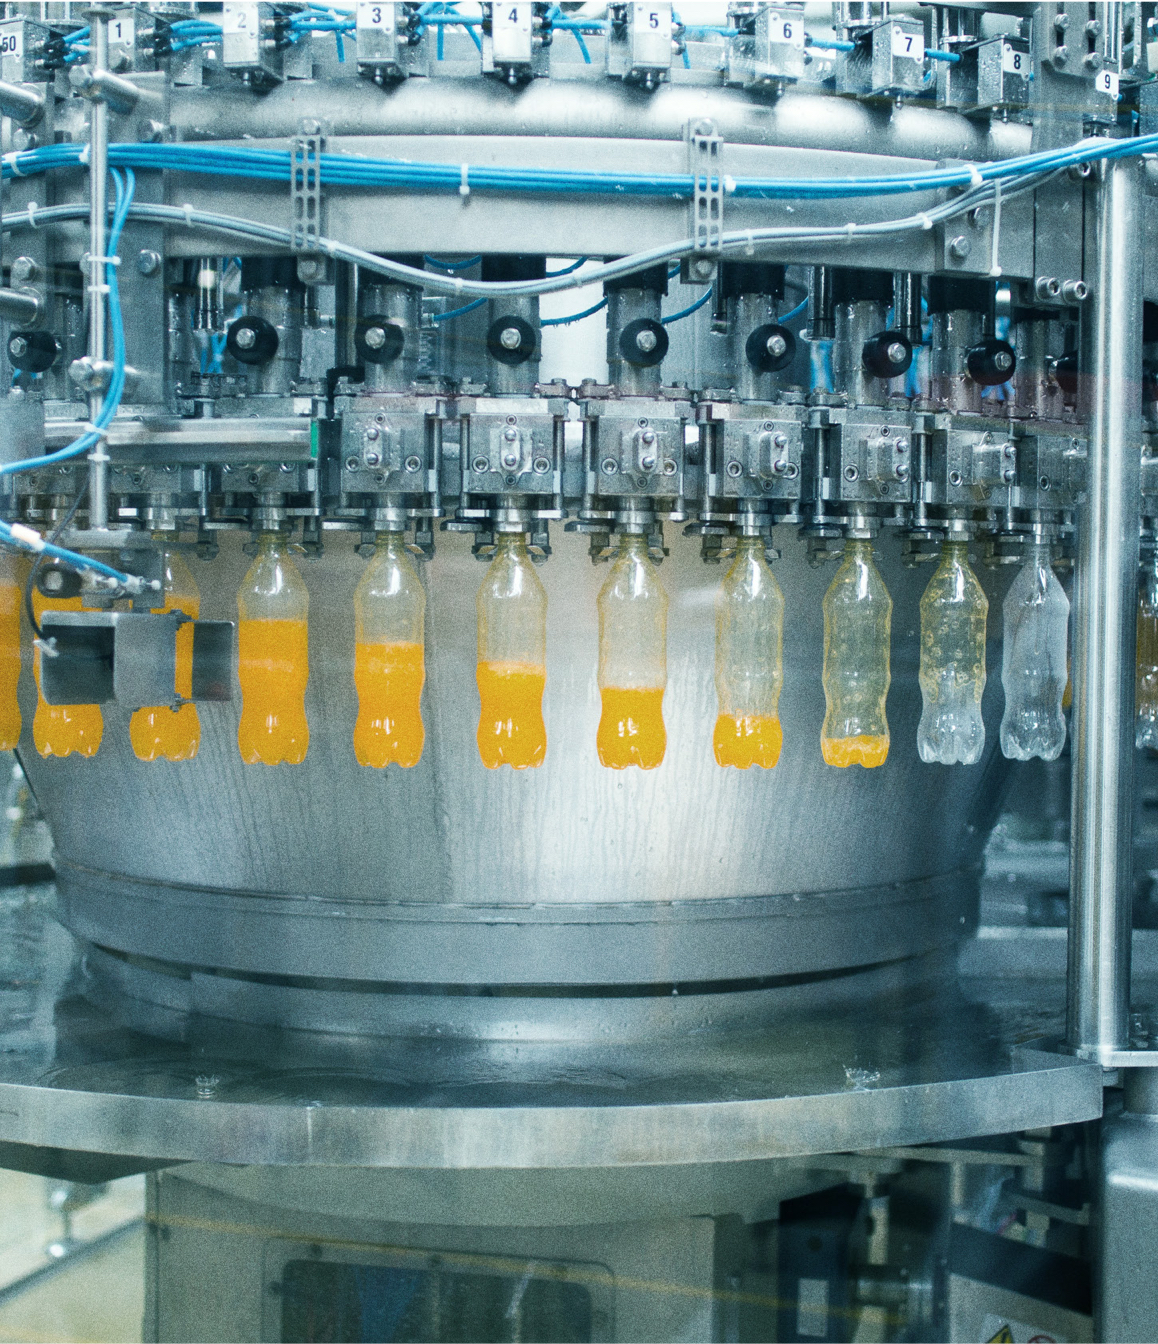 Genesis Robotics LiveDrive Delta used in lab dosing filling and capping